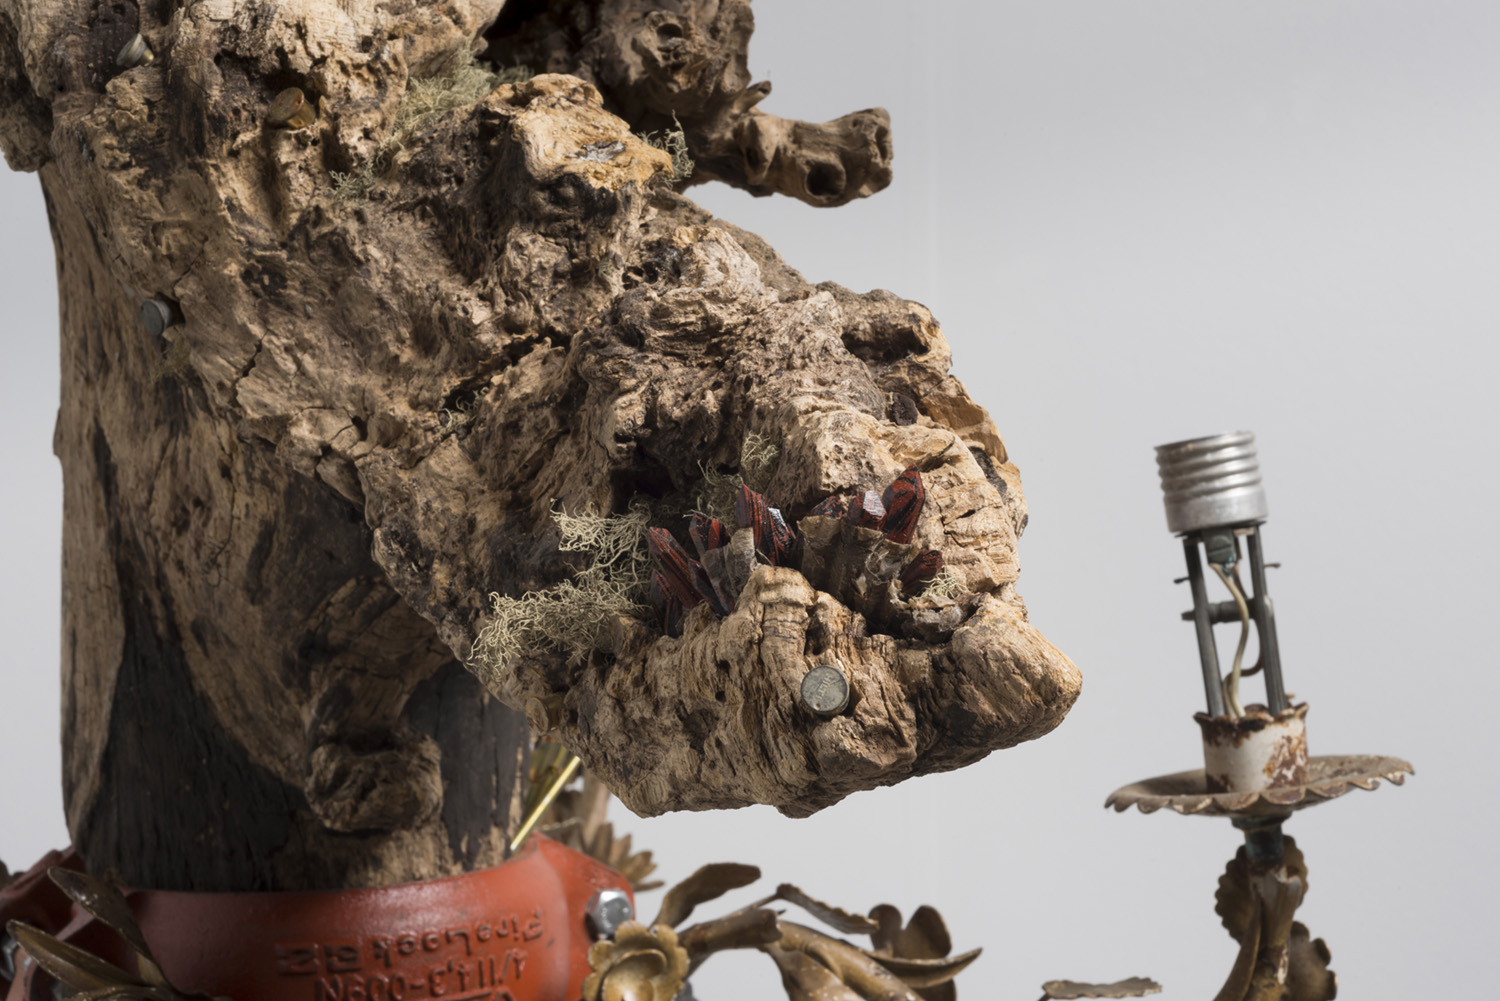 Lorna Williams-spoils-2013-chandelier fixtures, table legs, concrete, chain, plumbing hardware, Spanish moss, ukulele, root system, nails, wasp hive, acrylic, bullet casings-45x20x29-detail-5(2).jpg